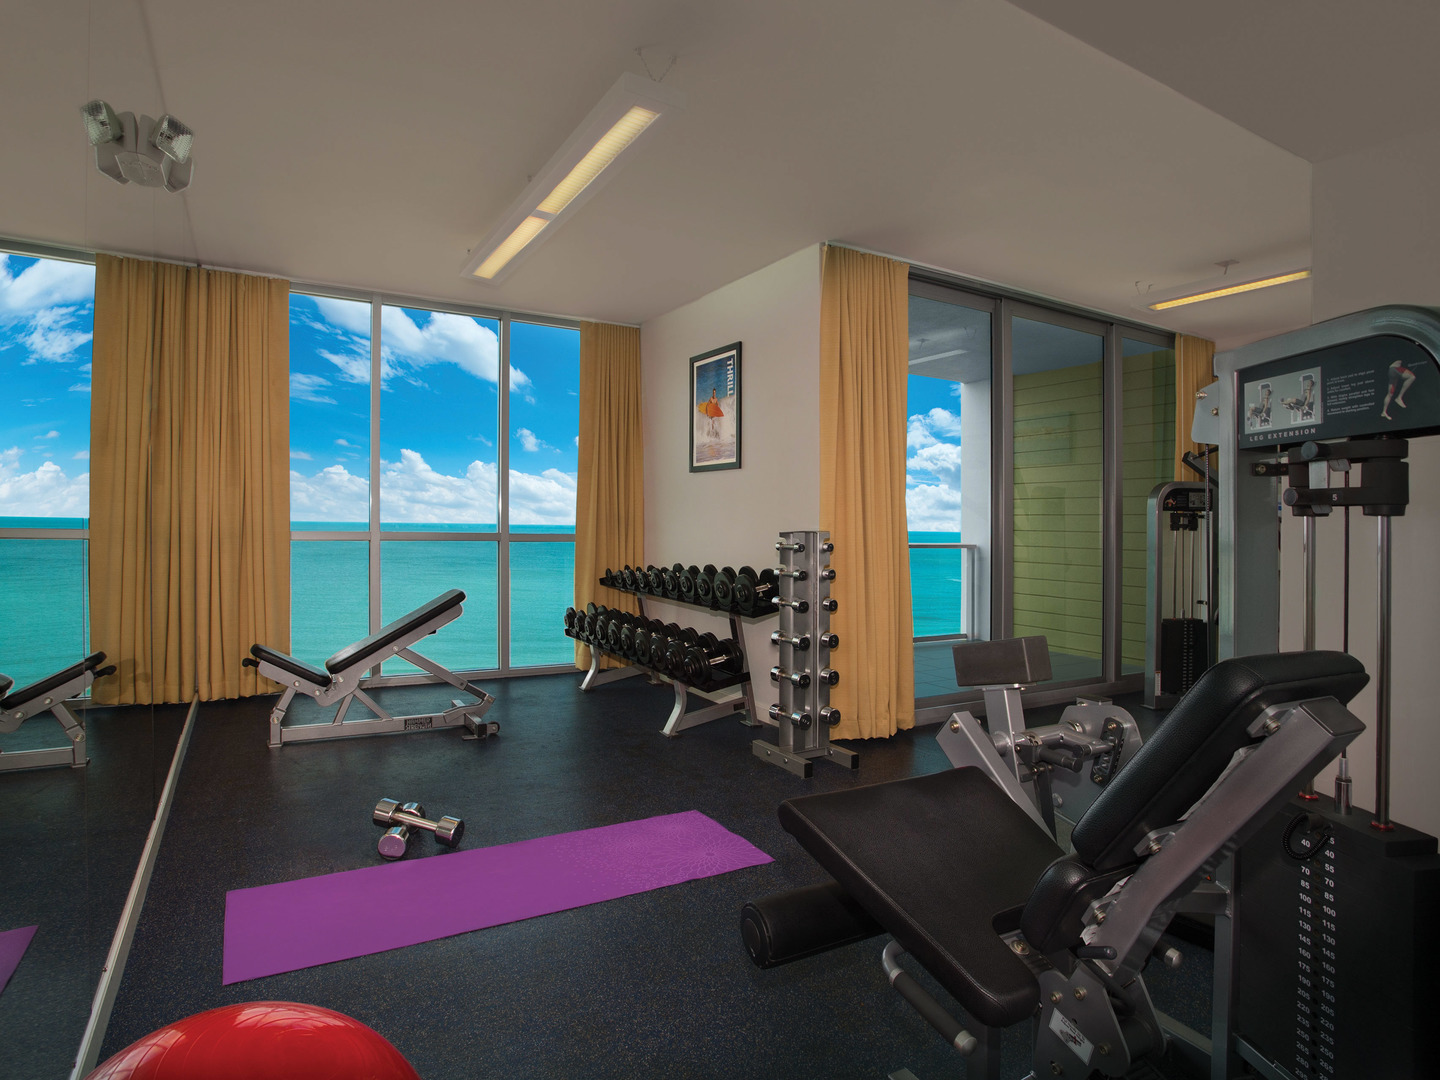 Marriott's Crystal Shores Fitness Center. Marriott's Crystal Shores is located in Marco Island, Florida United States.